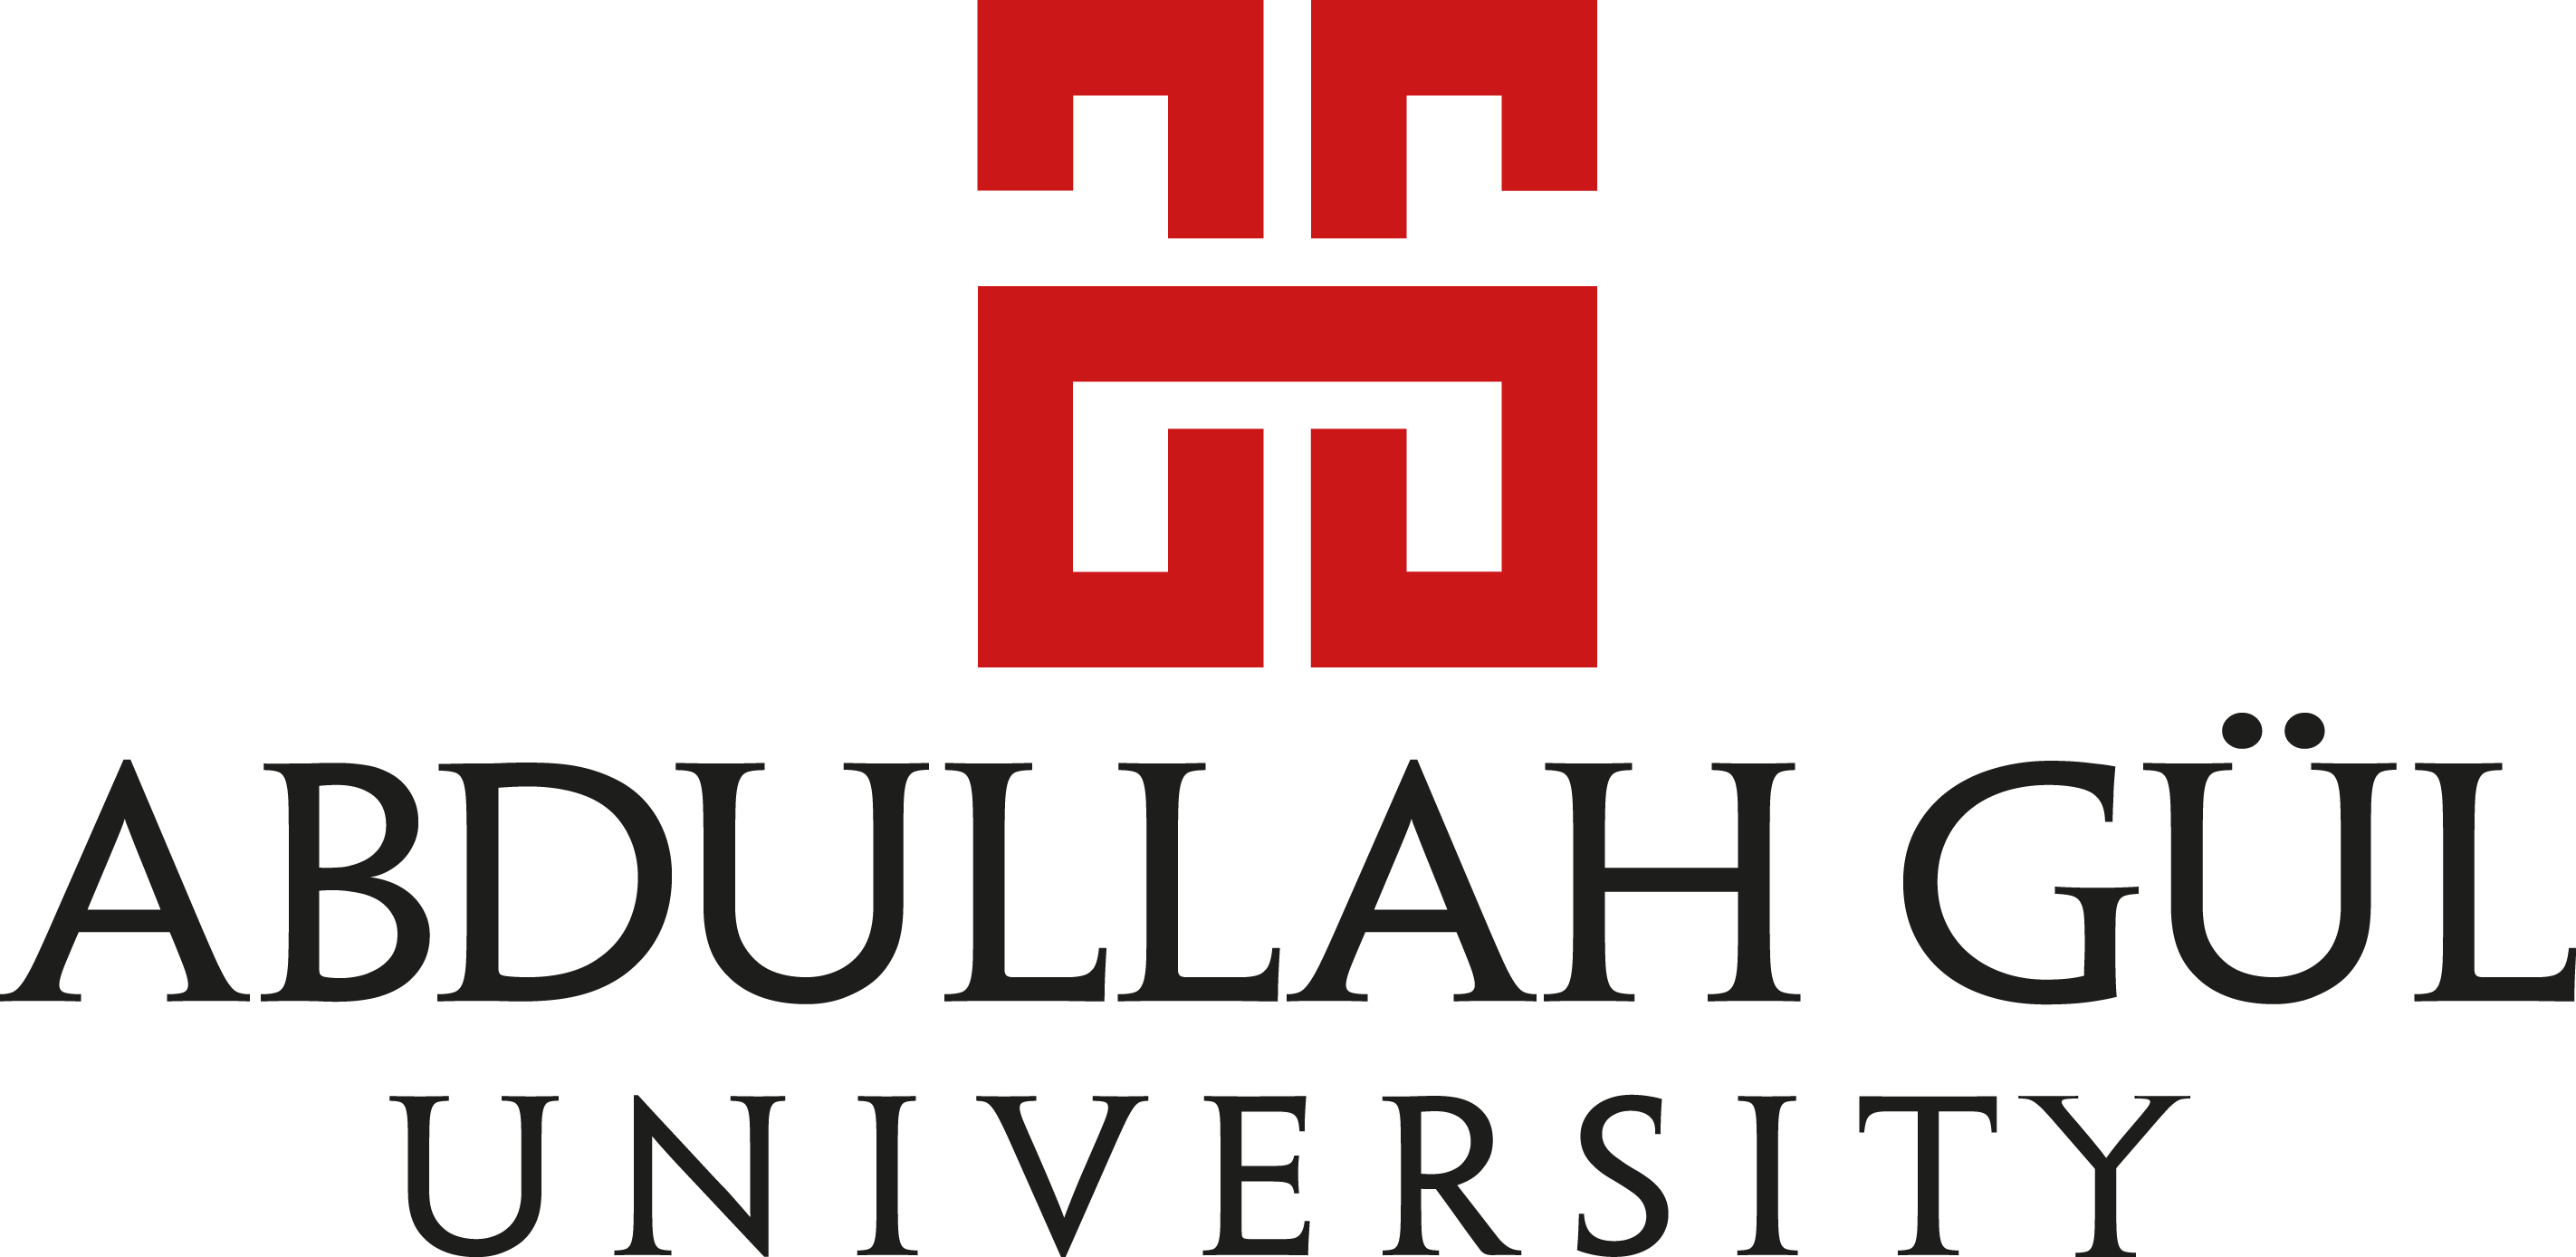 abdullah gul university logo vector